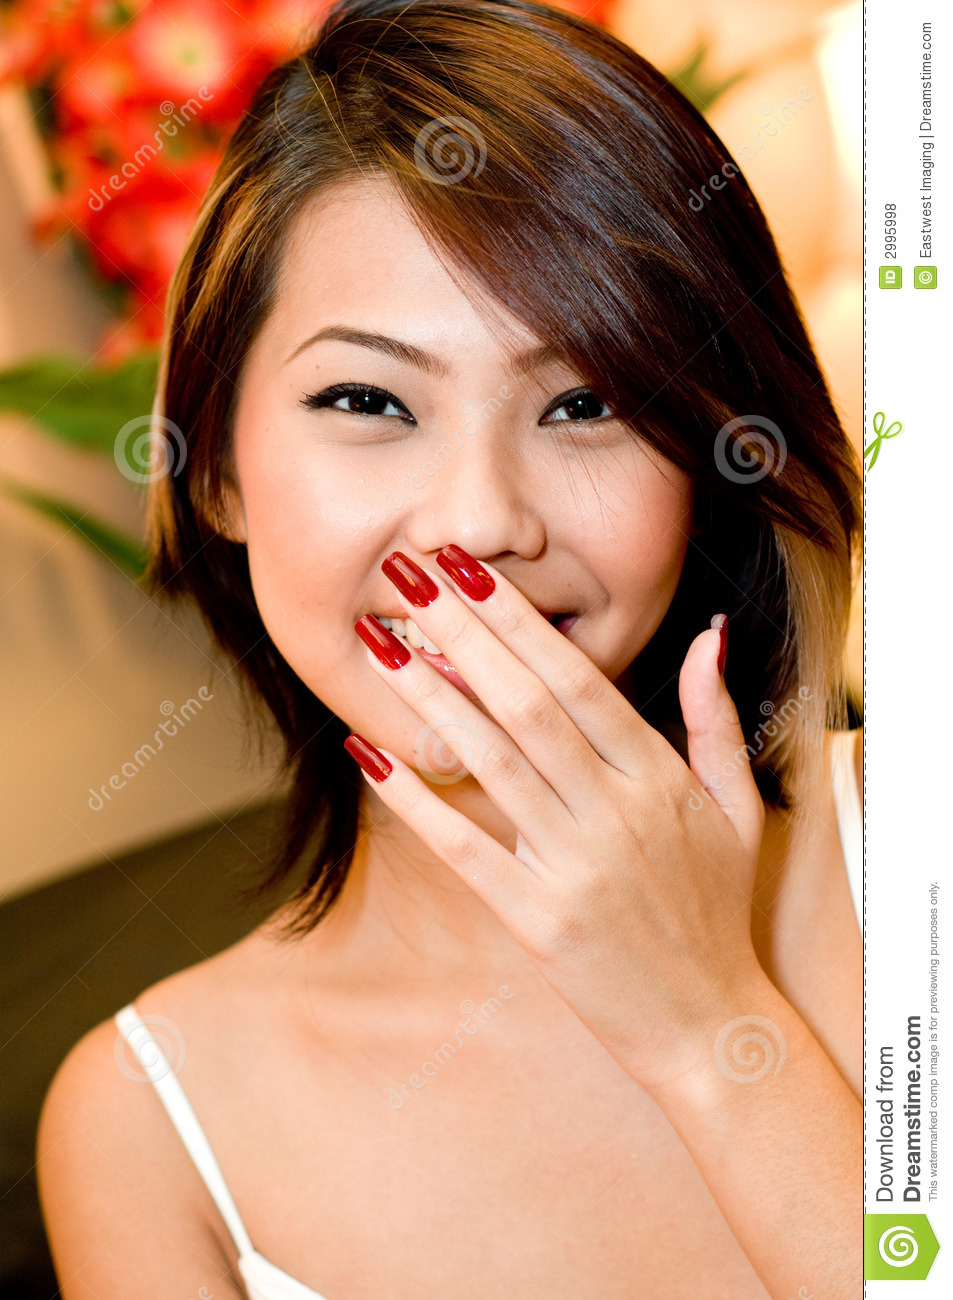 Http Www Dreamstime Com Royalty Free Stock Photos Pretty Asian Woman Image2995998